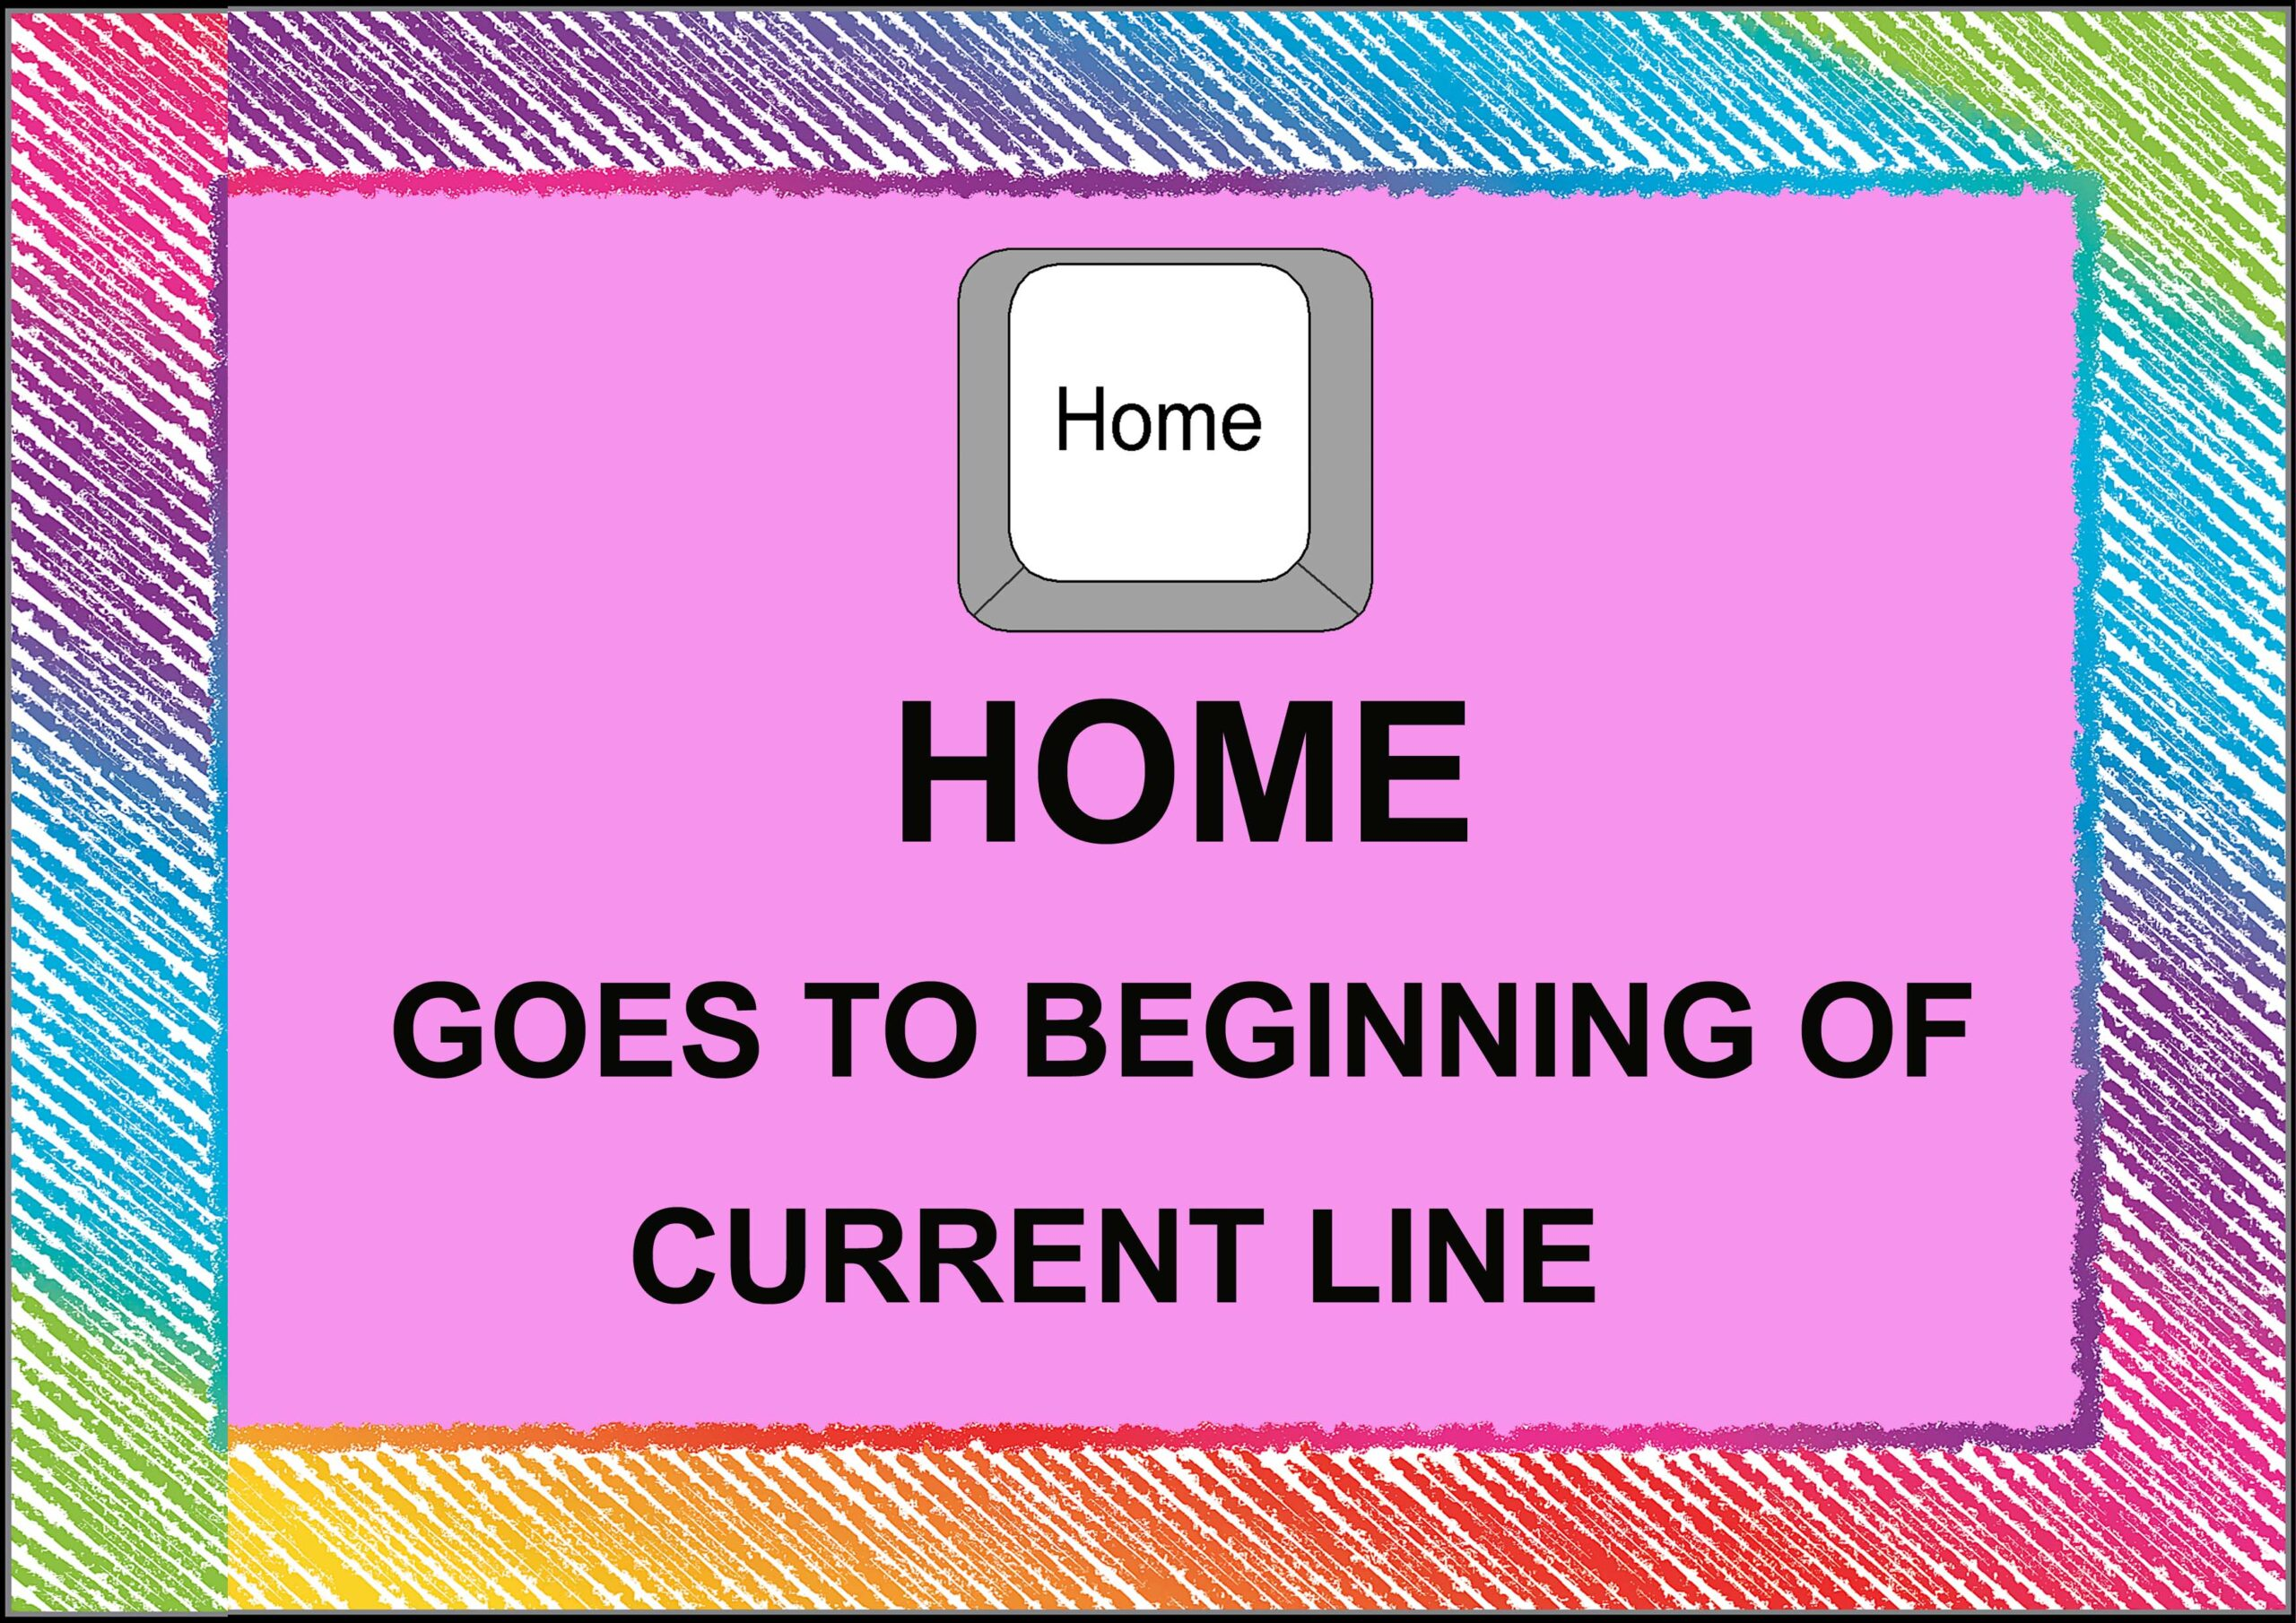 Home= Goes to Beginning Of Current Line